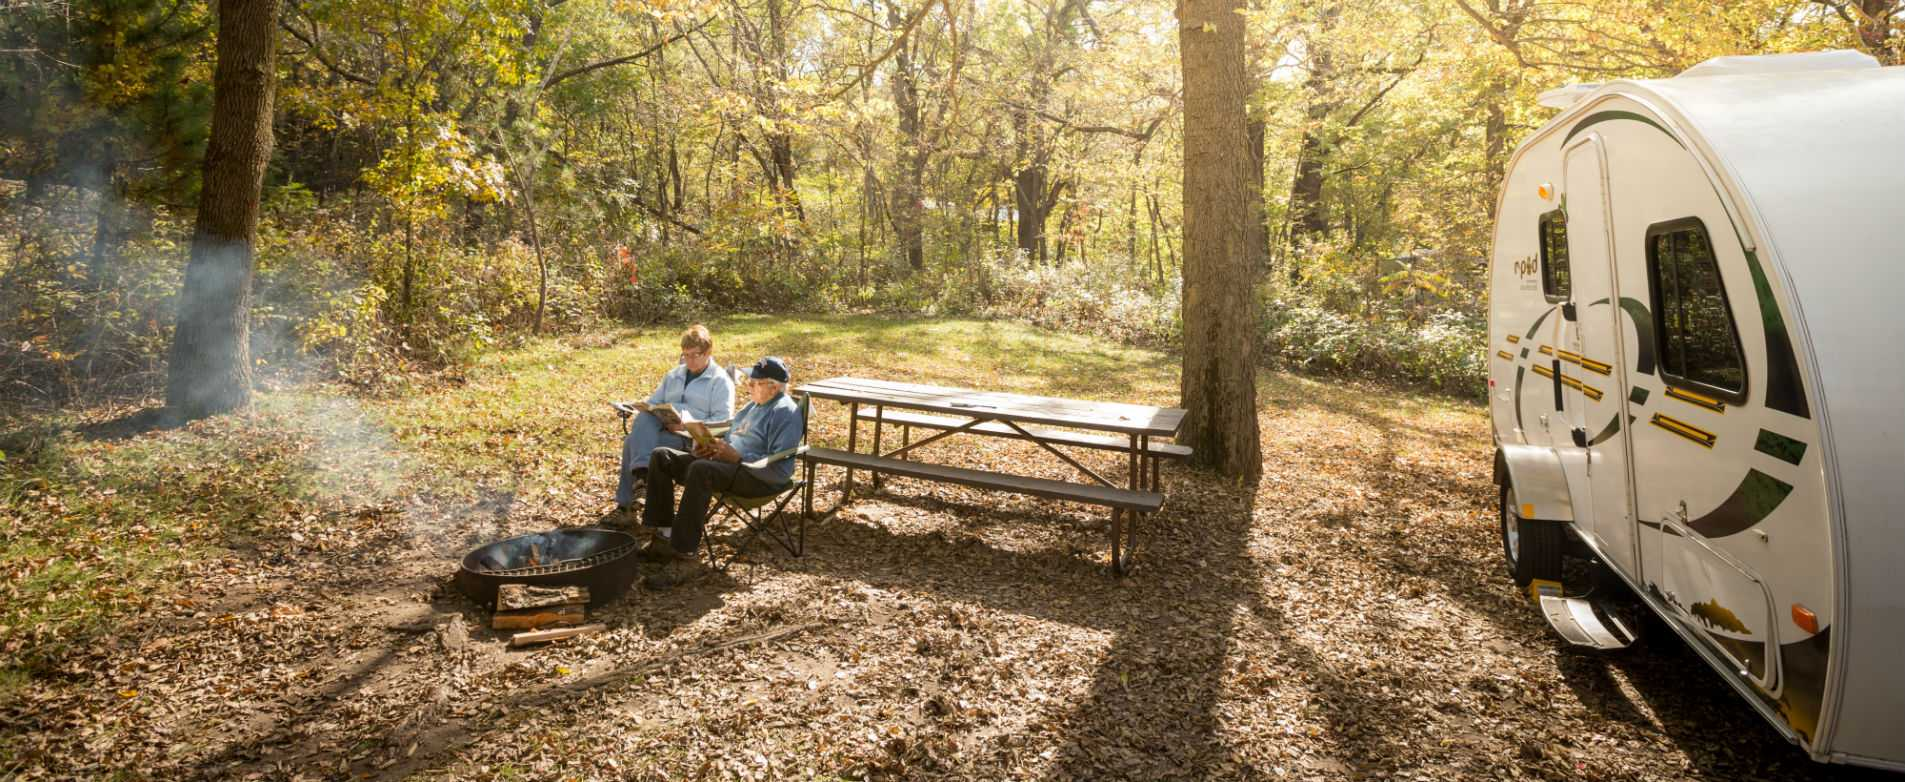 Couple Relaxing at Campsite in Perrot State Park